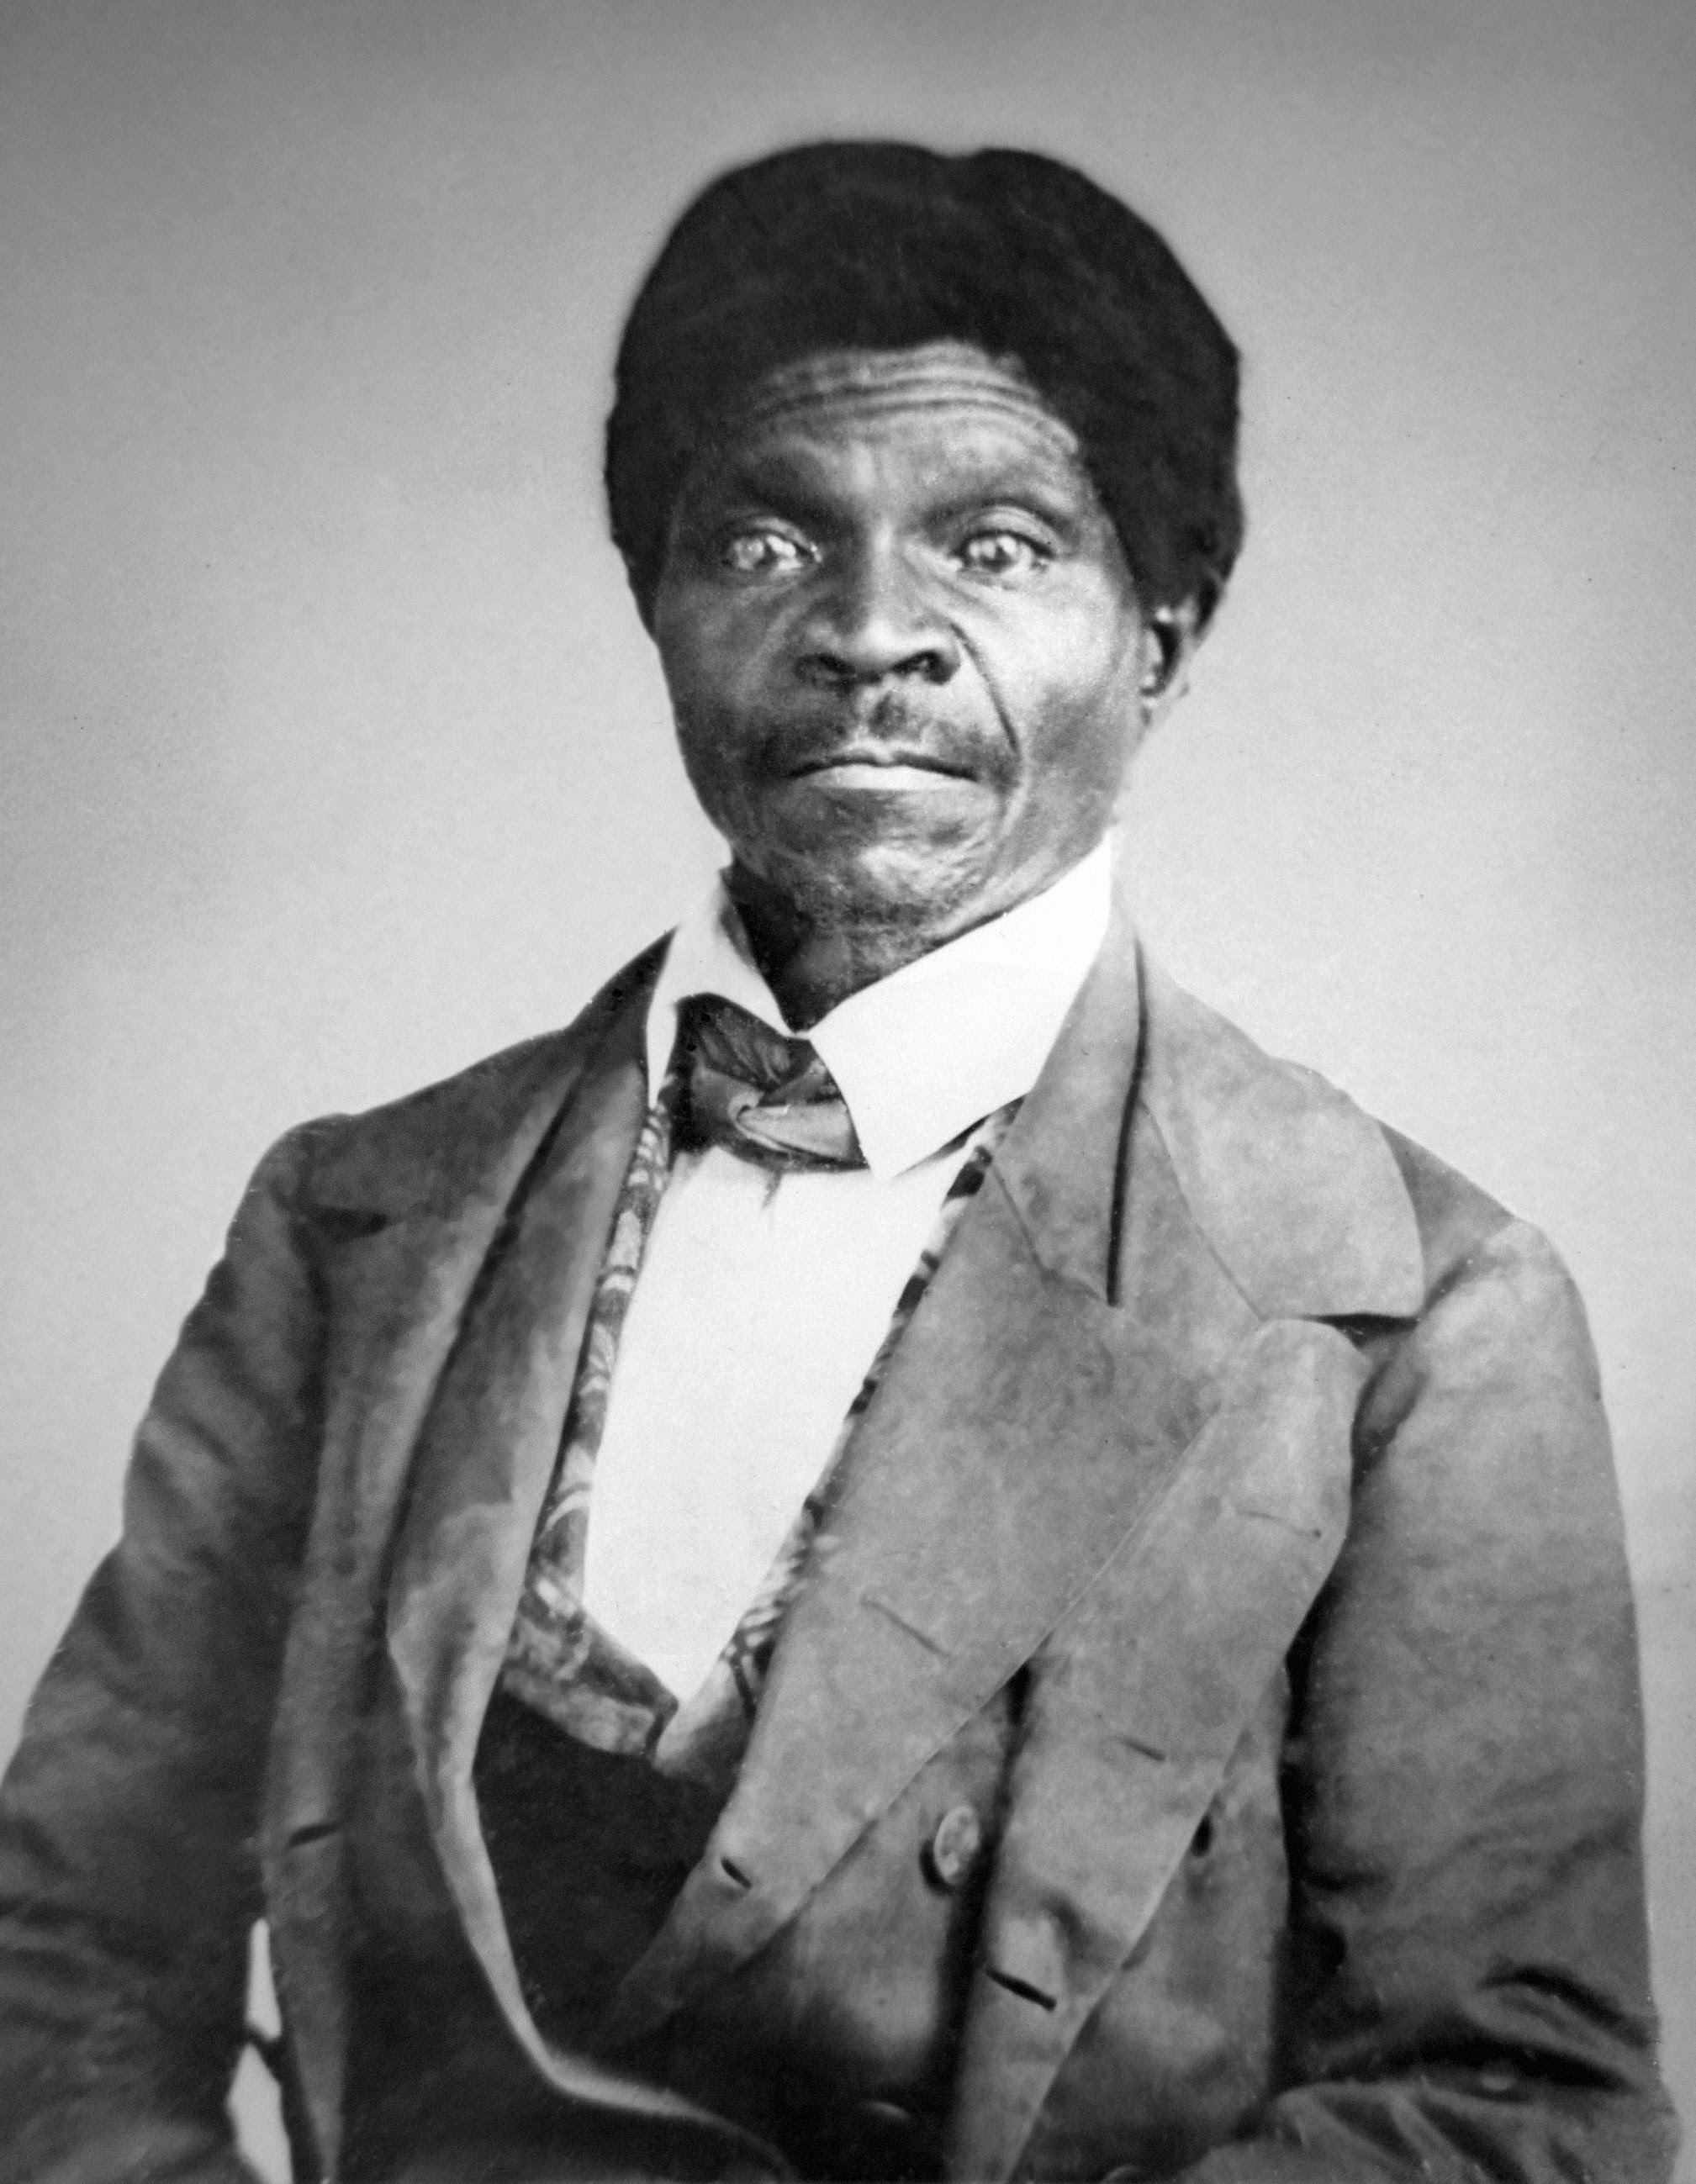 http://upload.wikimedia.org/wikipedia/commons/4/48/Dred_Scott_photograph_(circa_1857).jpg